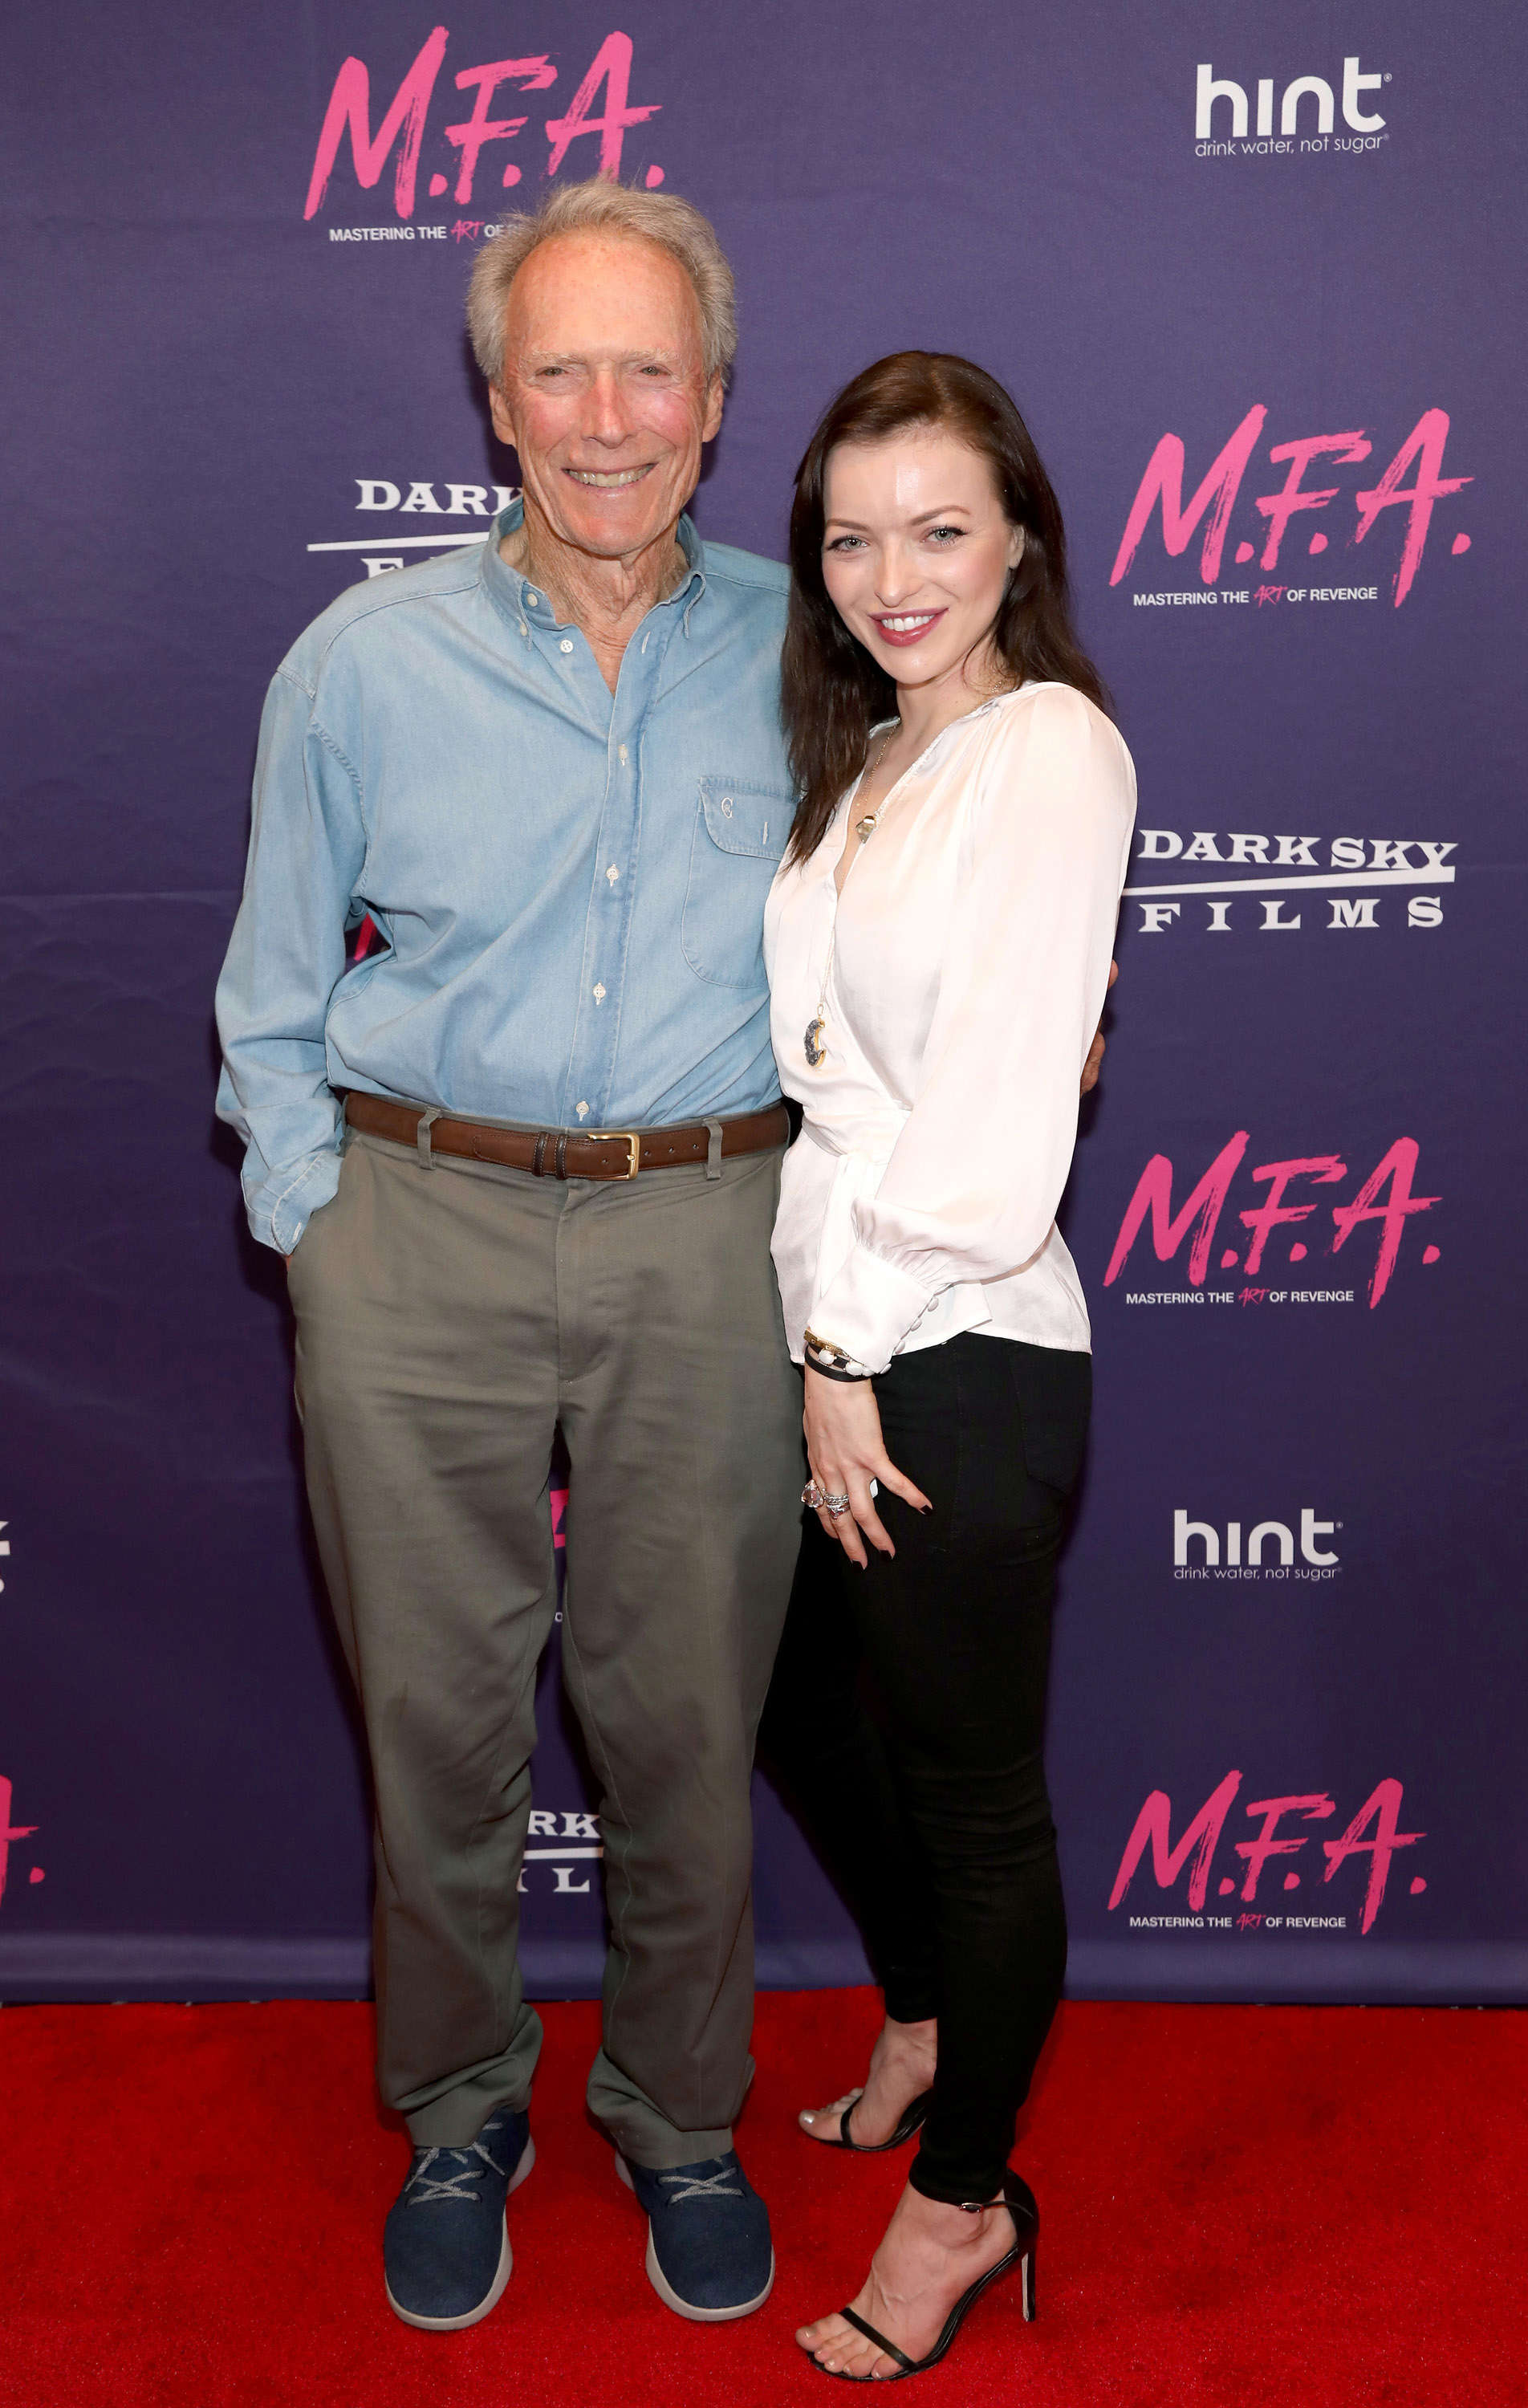 "Slide 8 of 18: WEST HOLLYWOOD, CA - OCTOBER 02:  Actor Clint Eastwood poses with his daughter actress Francesca Eastwood at the Premiere Of Dark Sky Films' ""M.F.A."" at The London West Hollywood on October 2, 2017 in West Hollywood, California.  (Photo by Jerritt Clark/WireImage)"